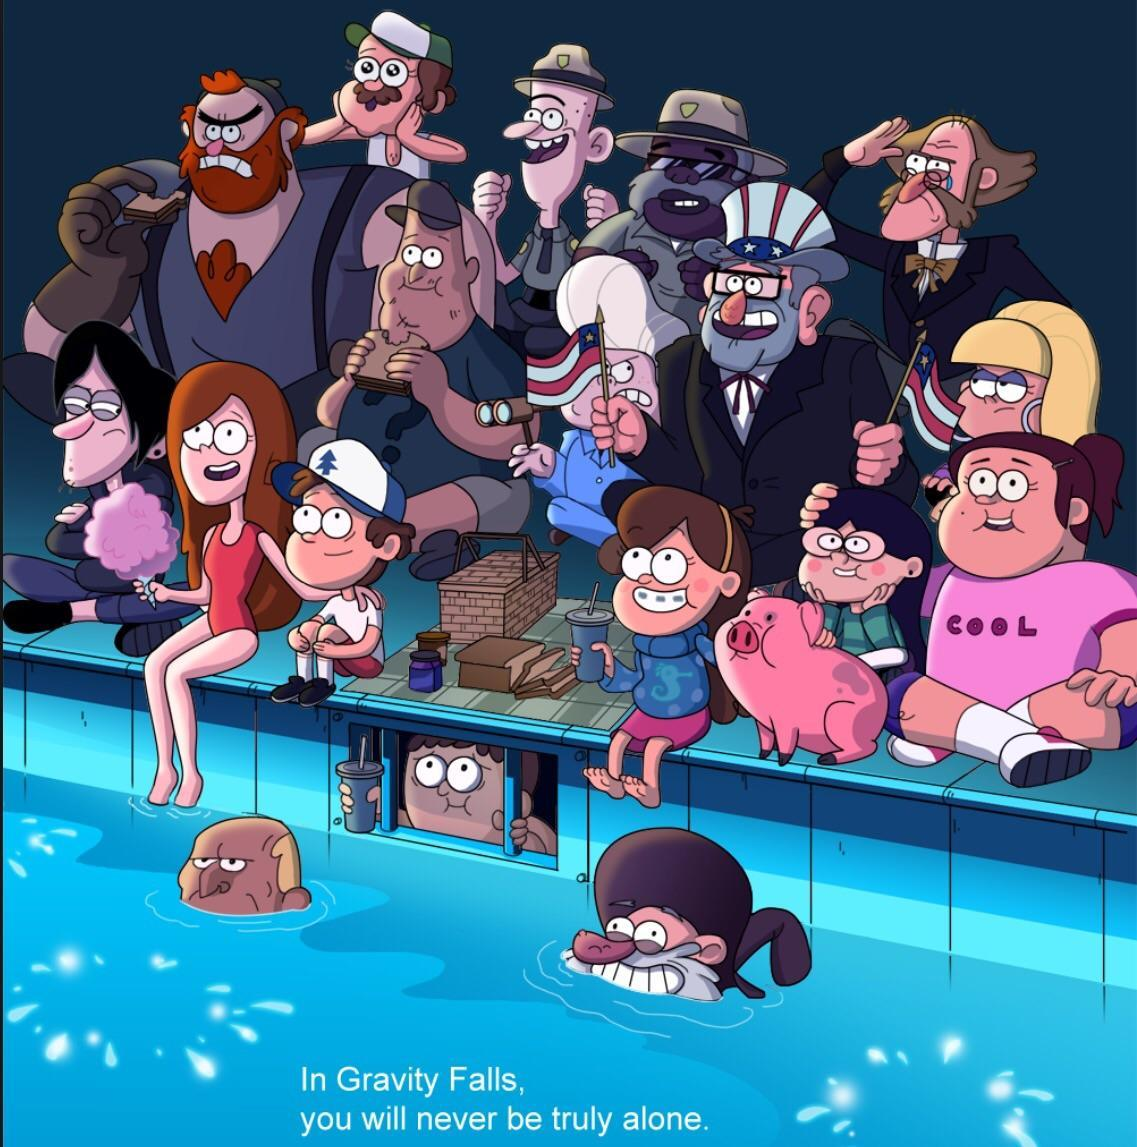 Do You know Gravity Falls?